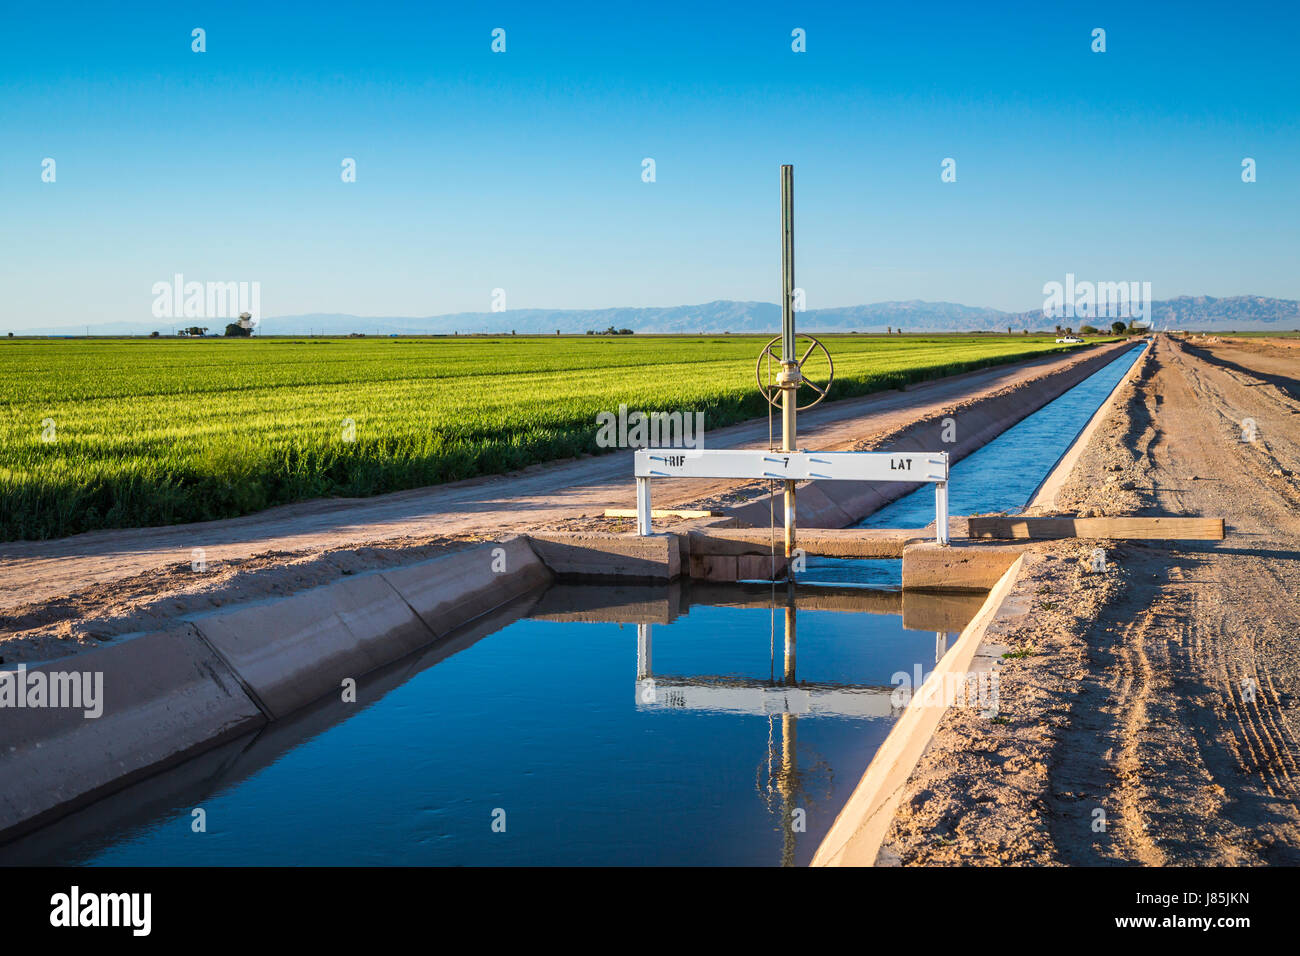 Agricultural irrigation canals and control facilities in the Imperial Valley of California, USA. - Stock Image